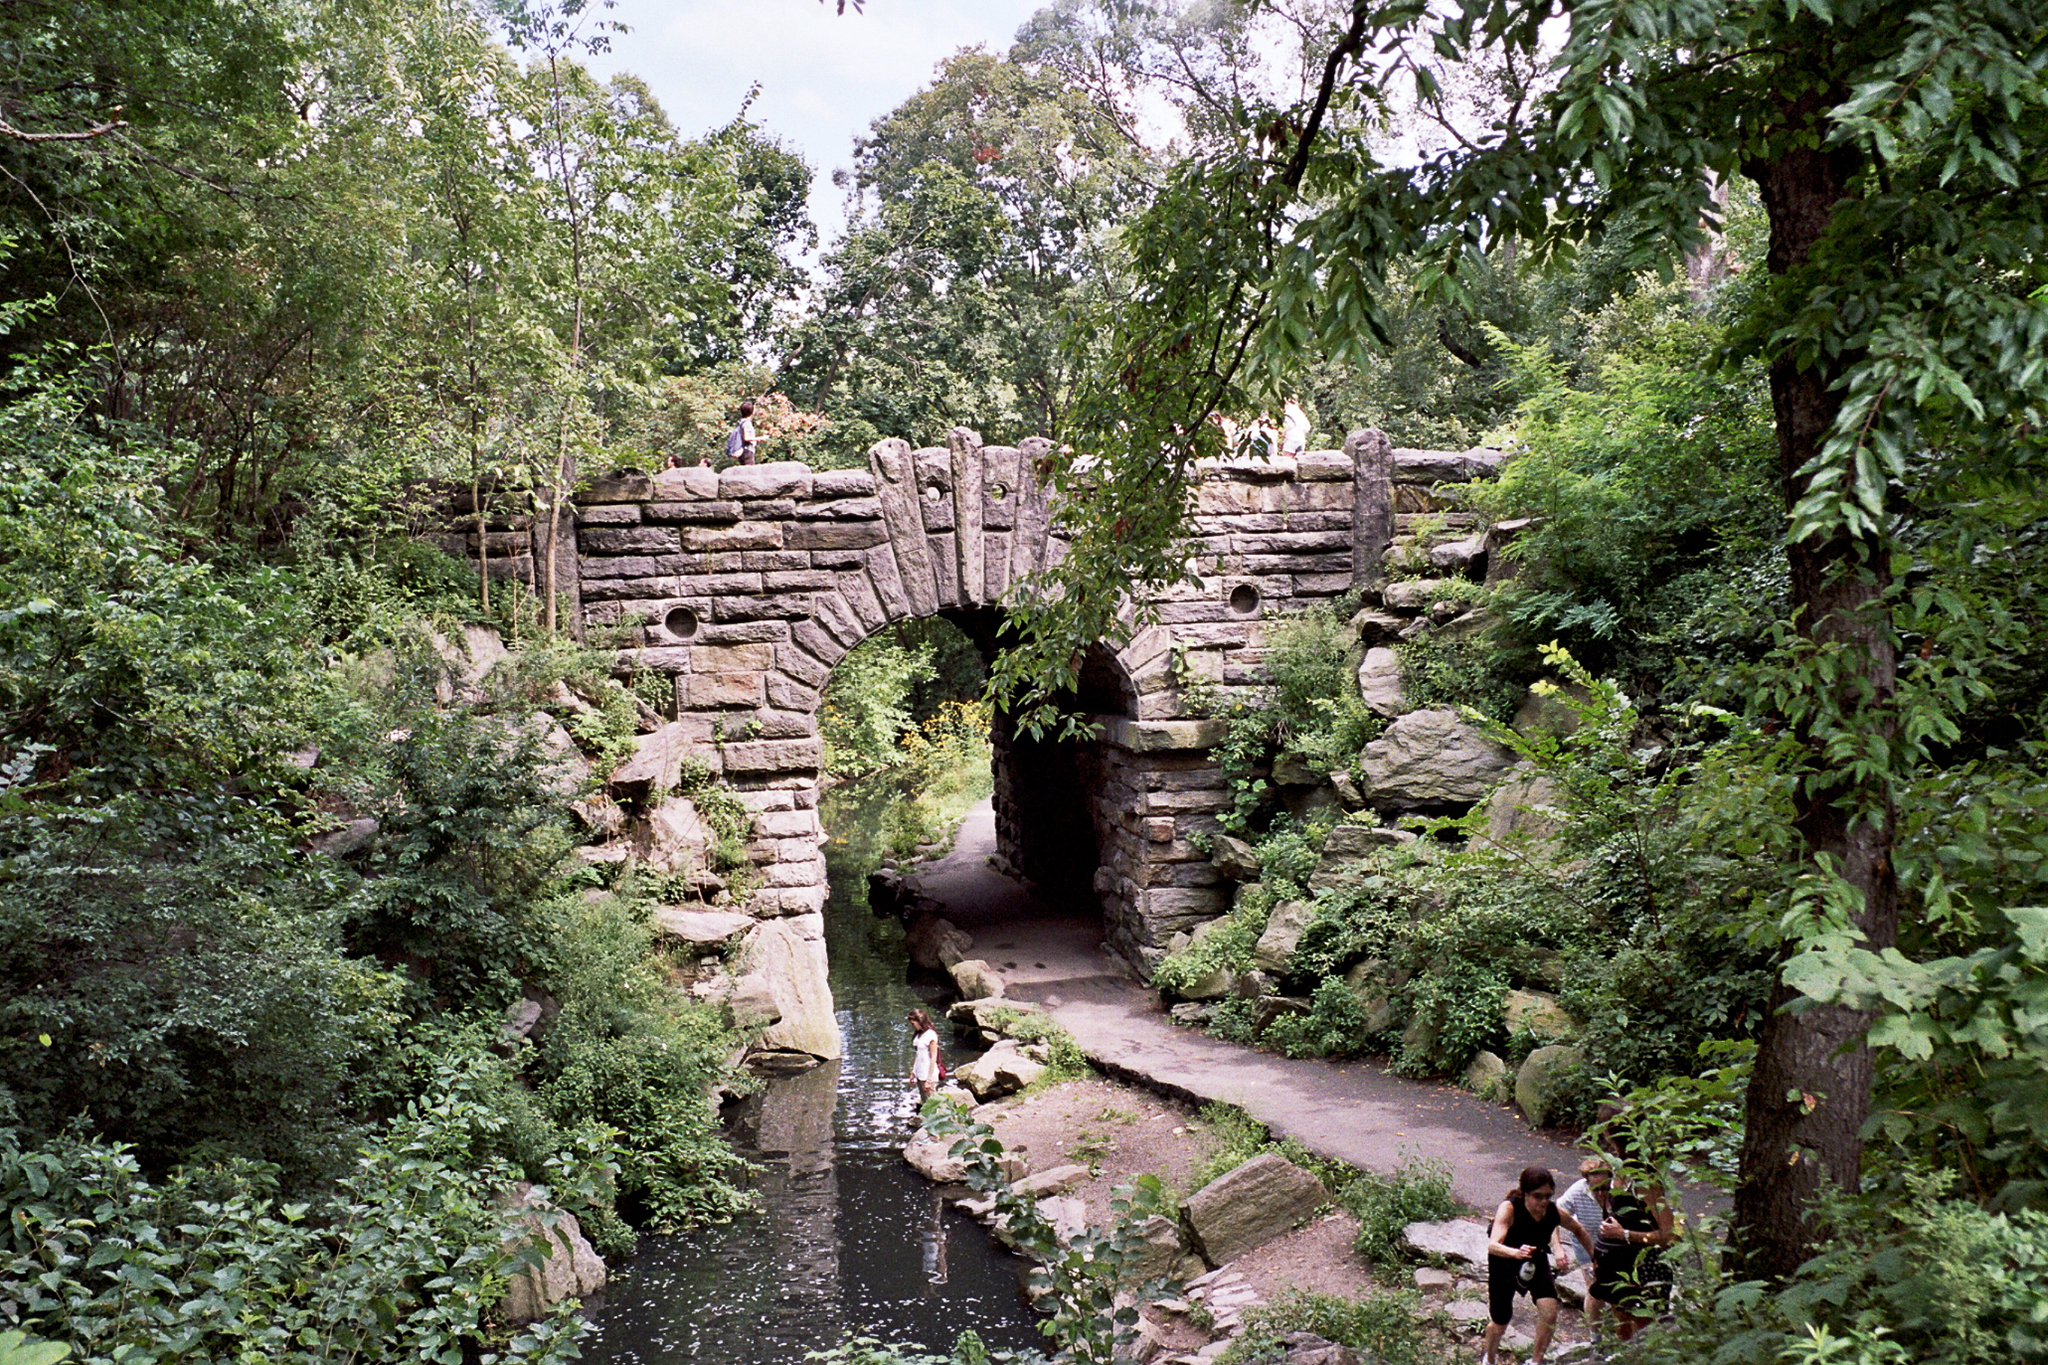 11 hidden spots in Central Park you need to explore